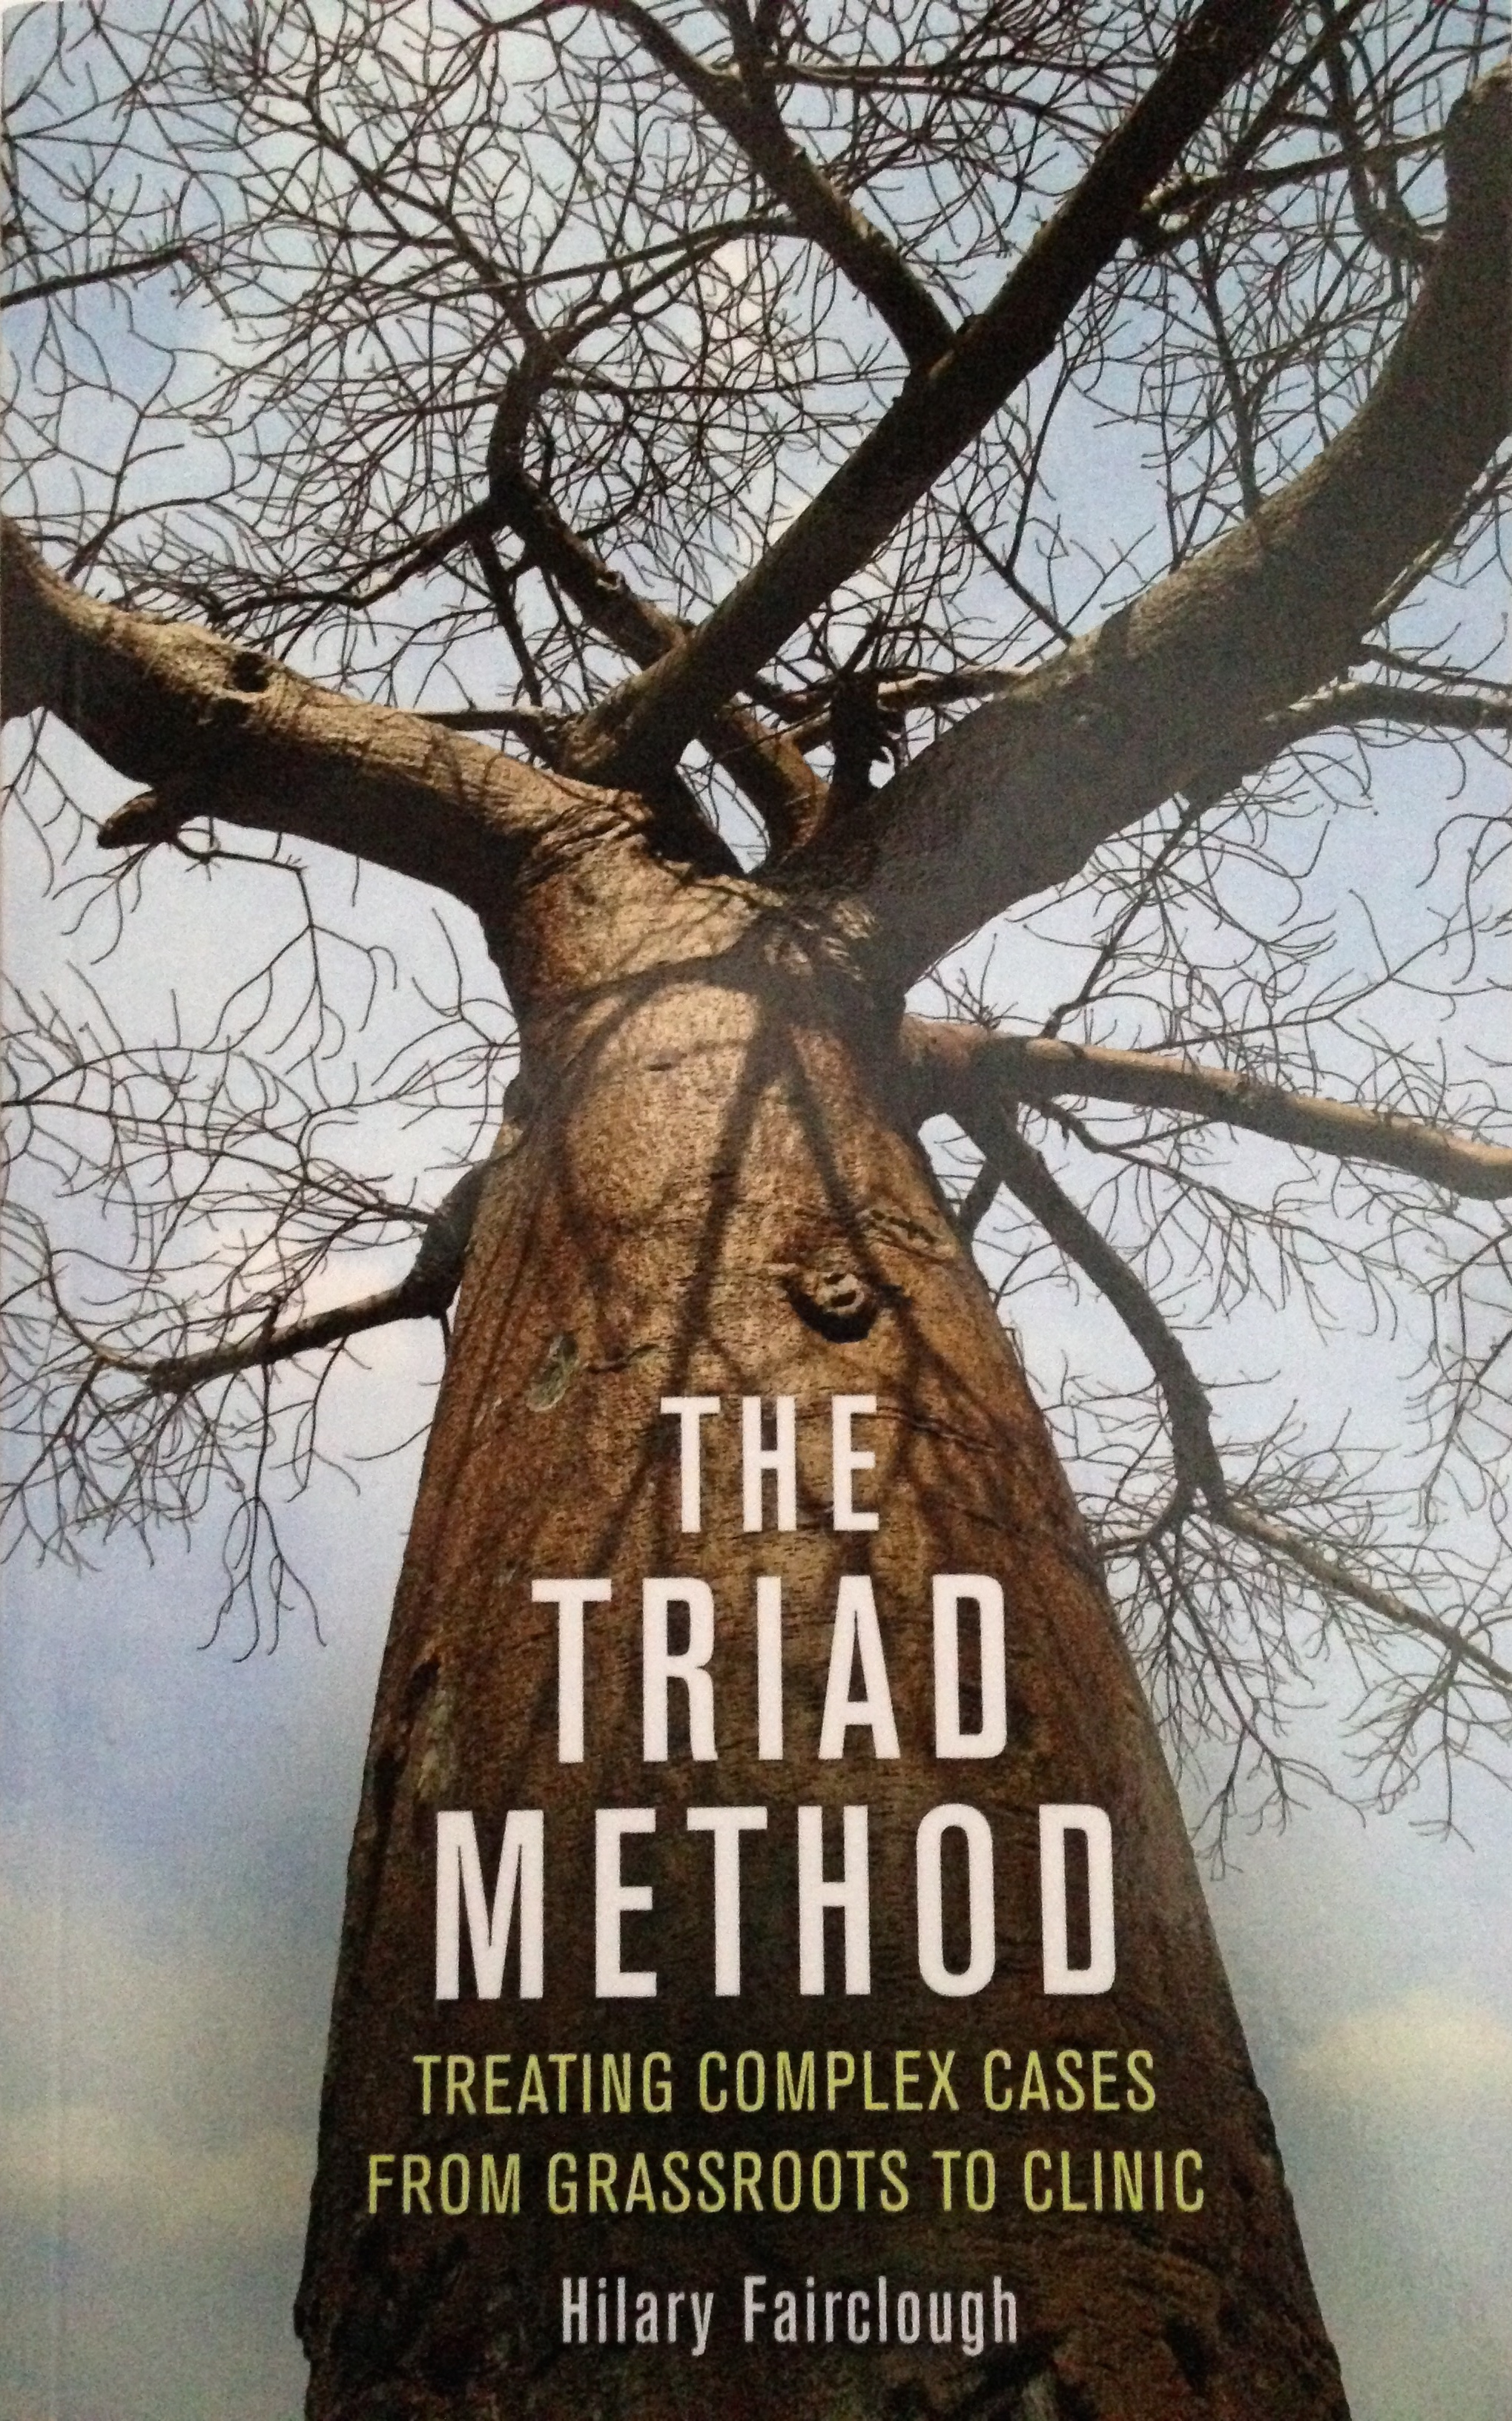 The Triad Method